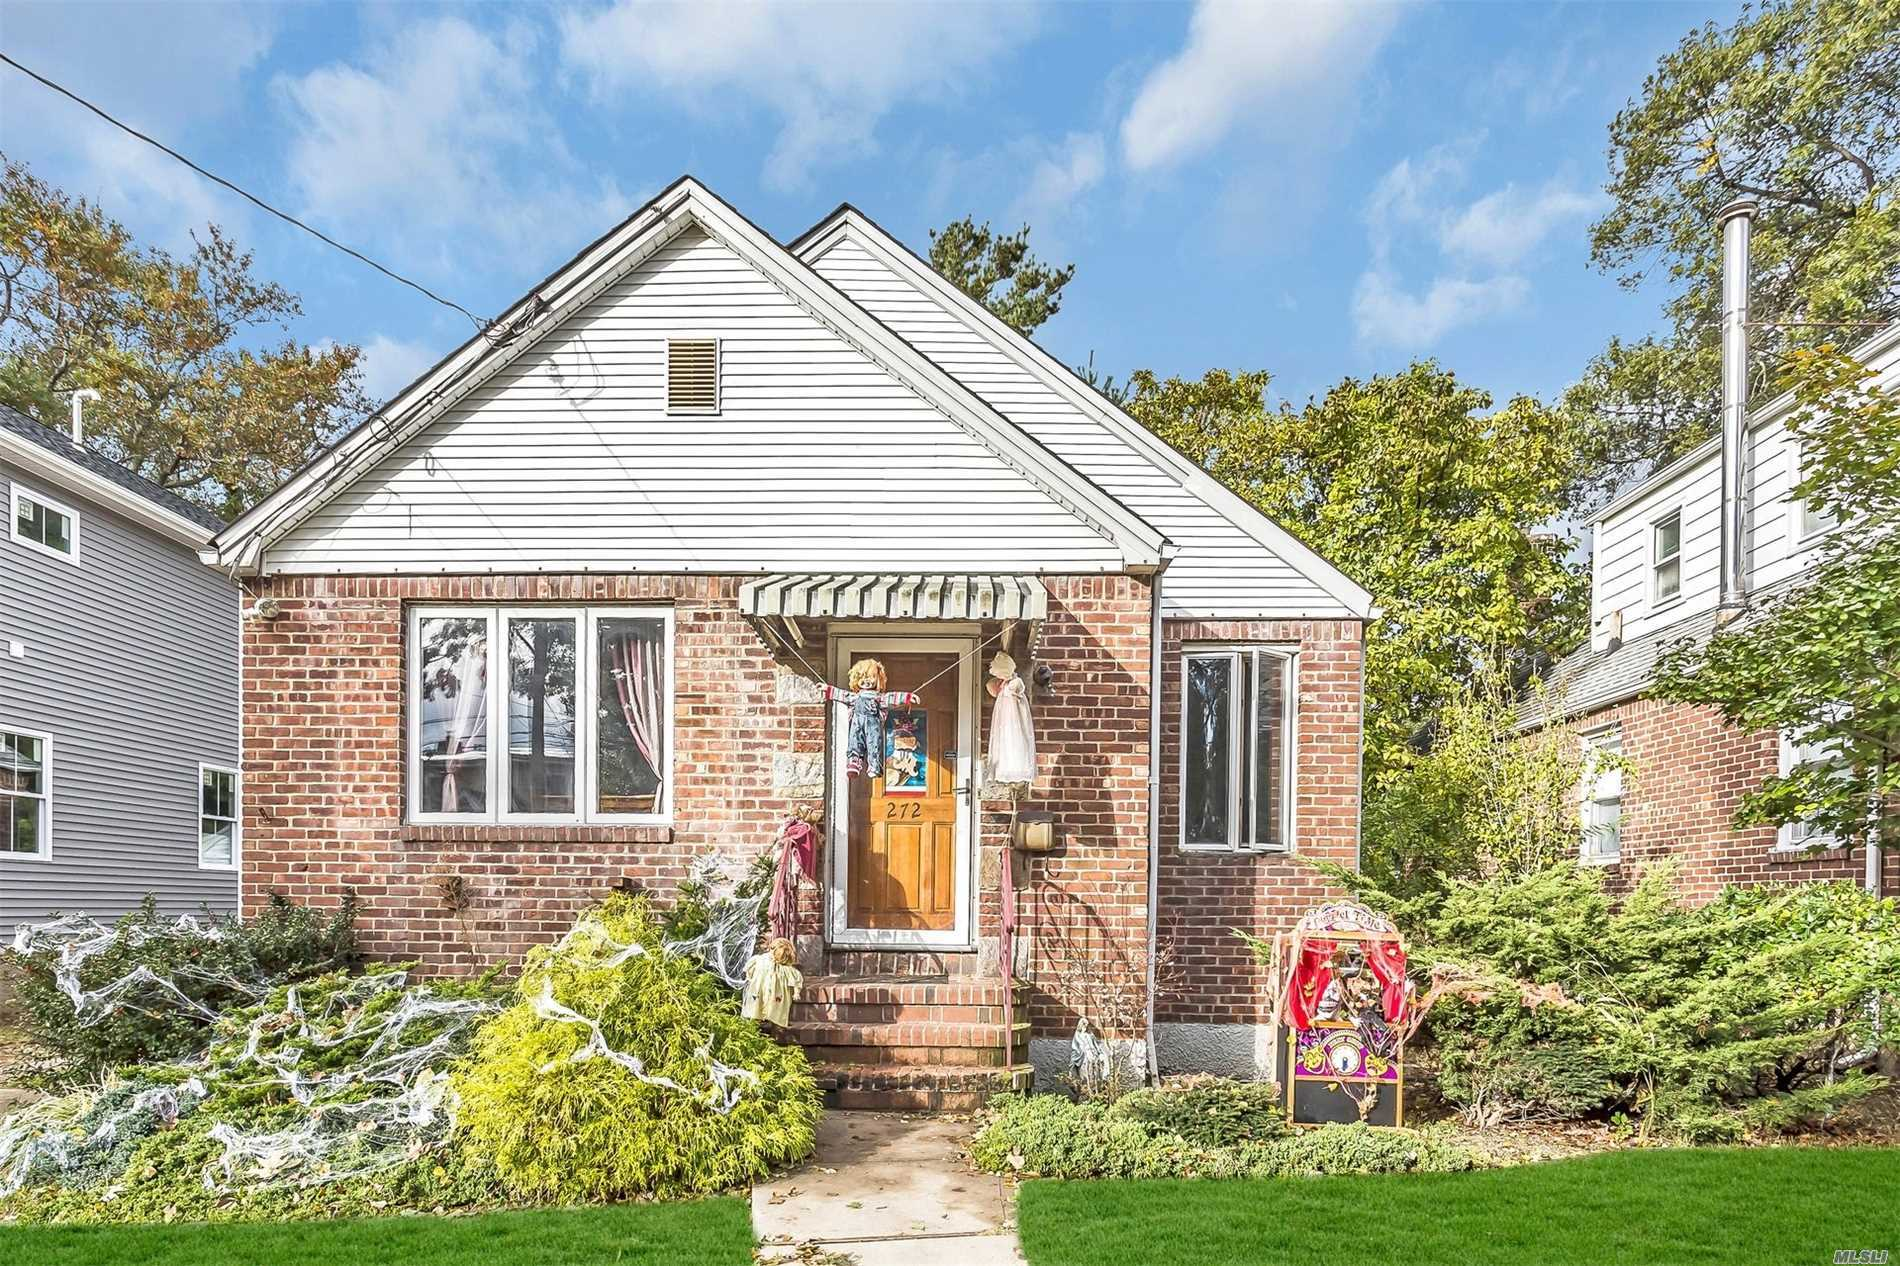 Very Nice 2Br Brick Ranch For Sale In Franklin Square. School District 17 With John St Elementary And Carey High School. Home Features Hardwood Floors Throughout. Gas Heat & Cooking. Full Basement. Brand New Hot Water Heater. 1 Car Detached Garage. Private Yard And Quiet Street.